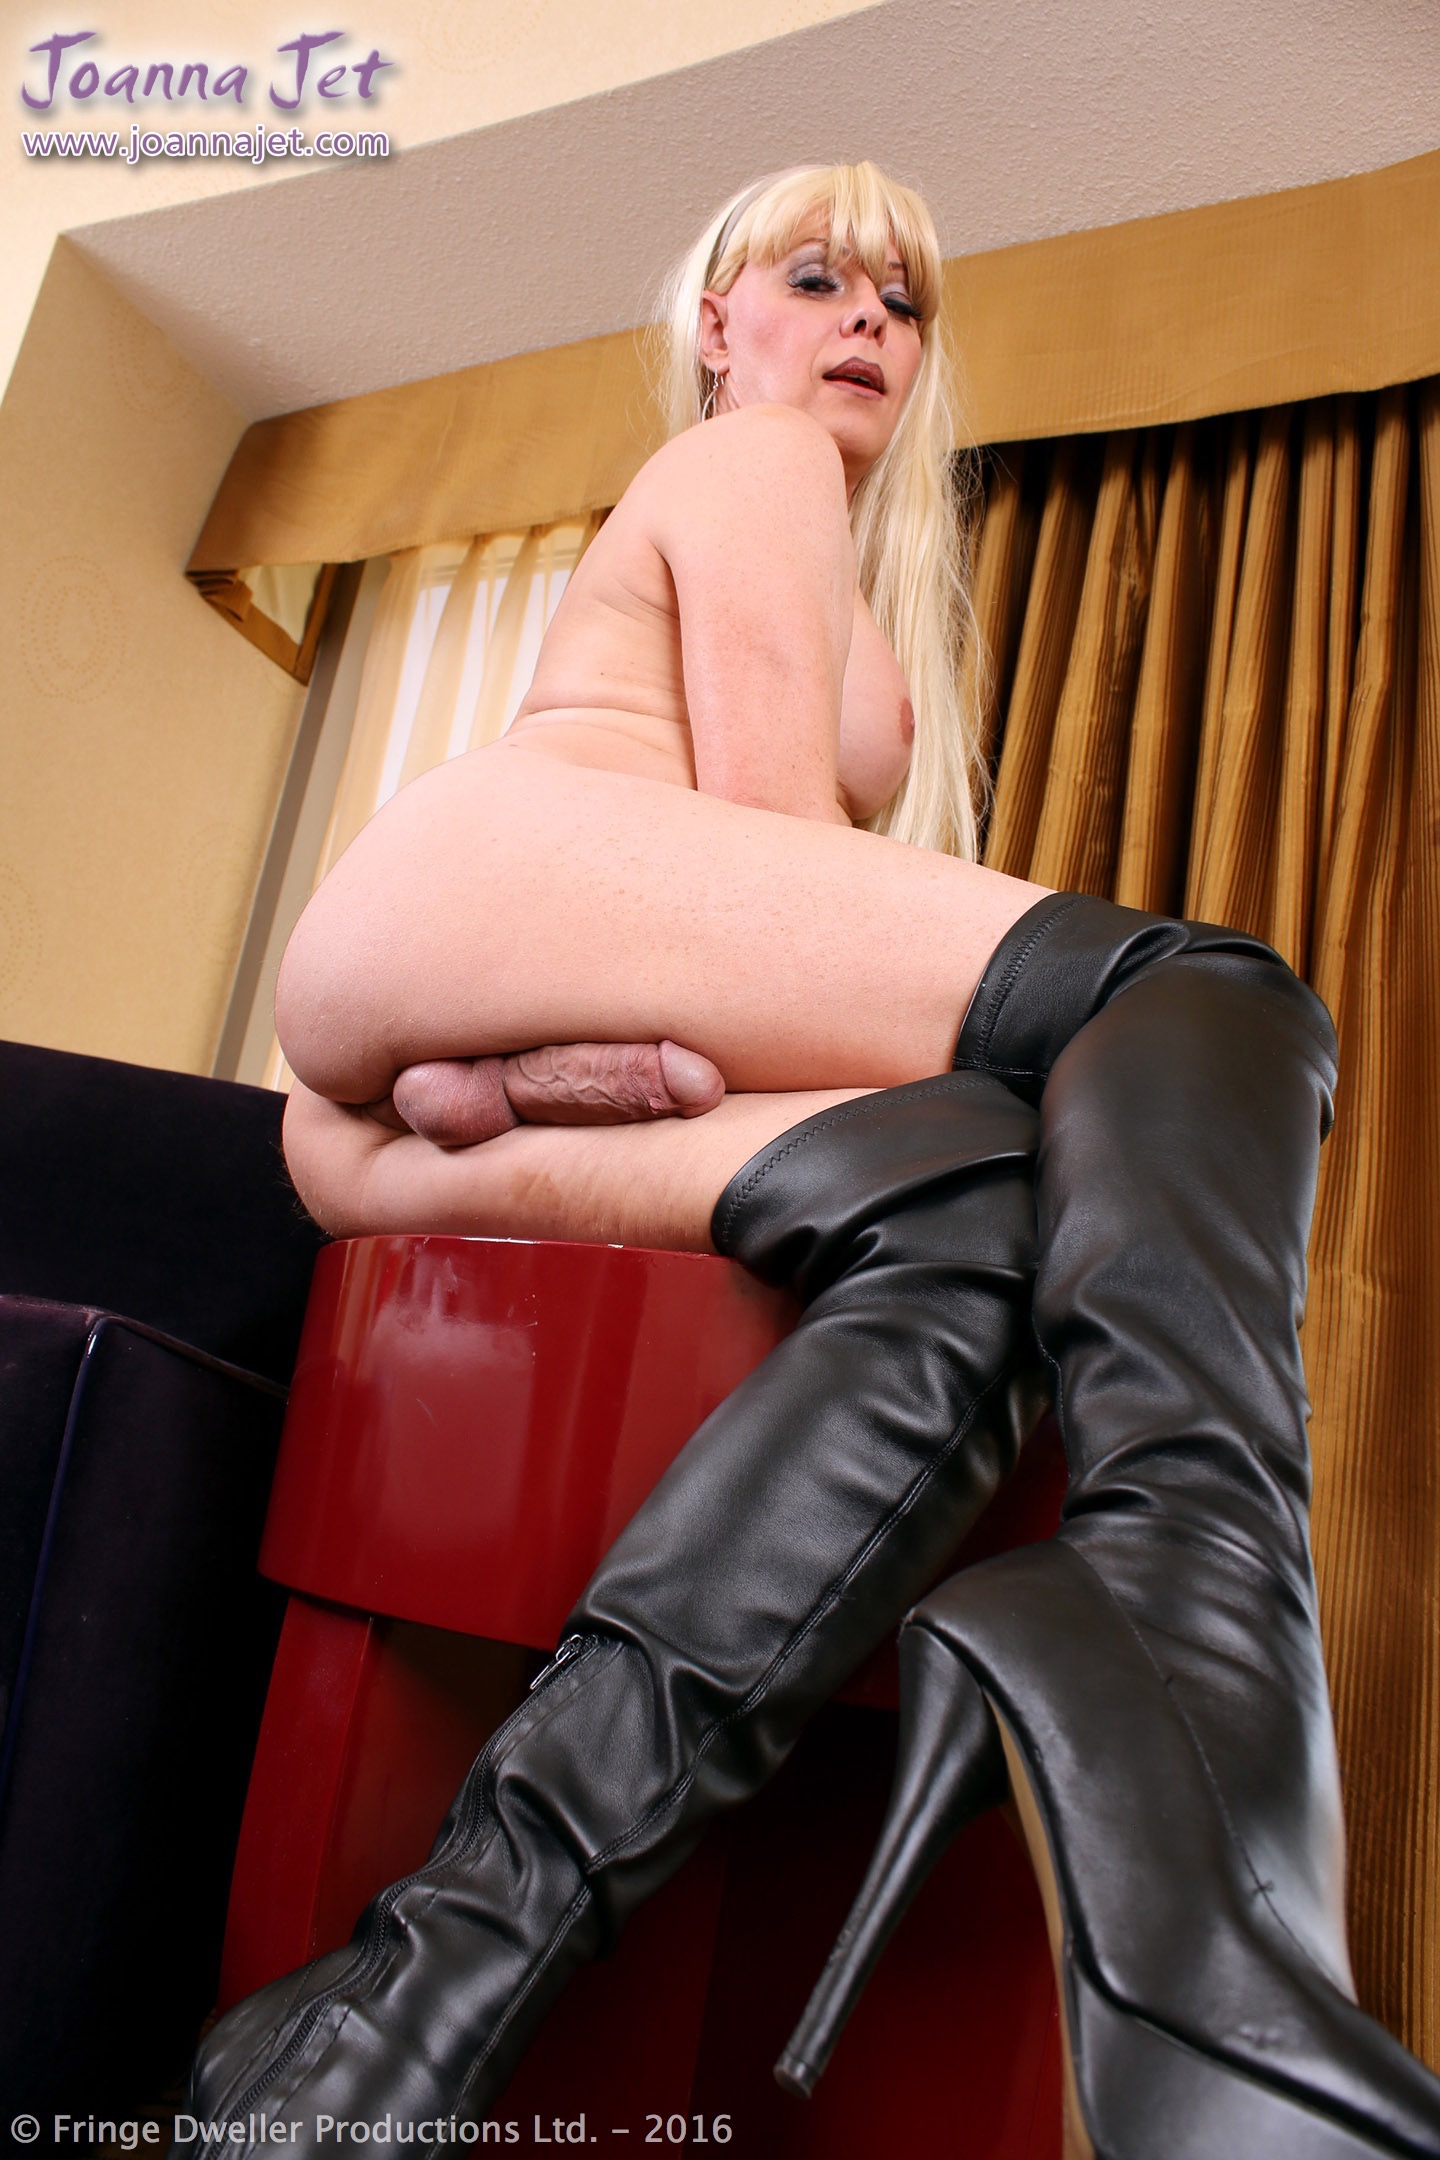 boots Shemale joanna jet